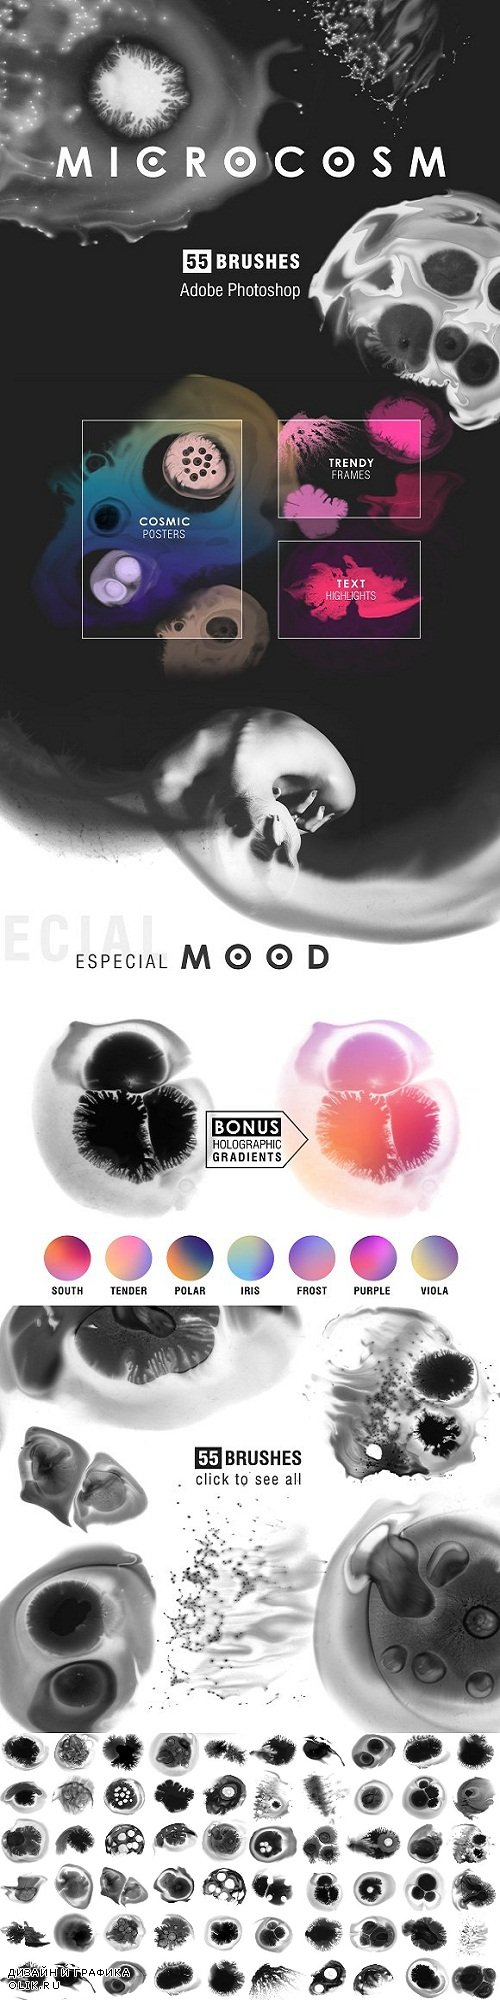 MICROCOSM - 55 Photoshop brushes - 2594593 (Updated)